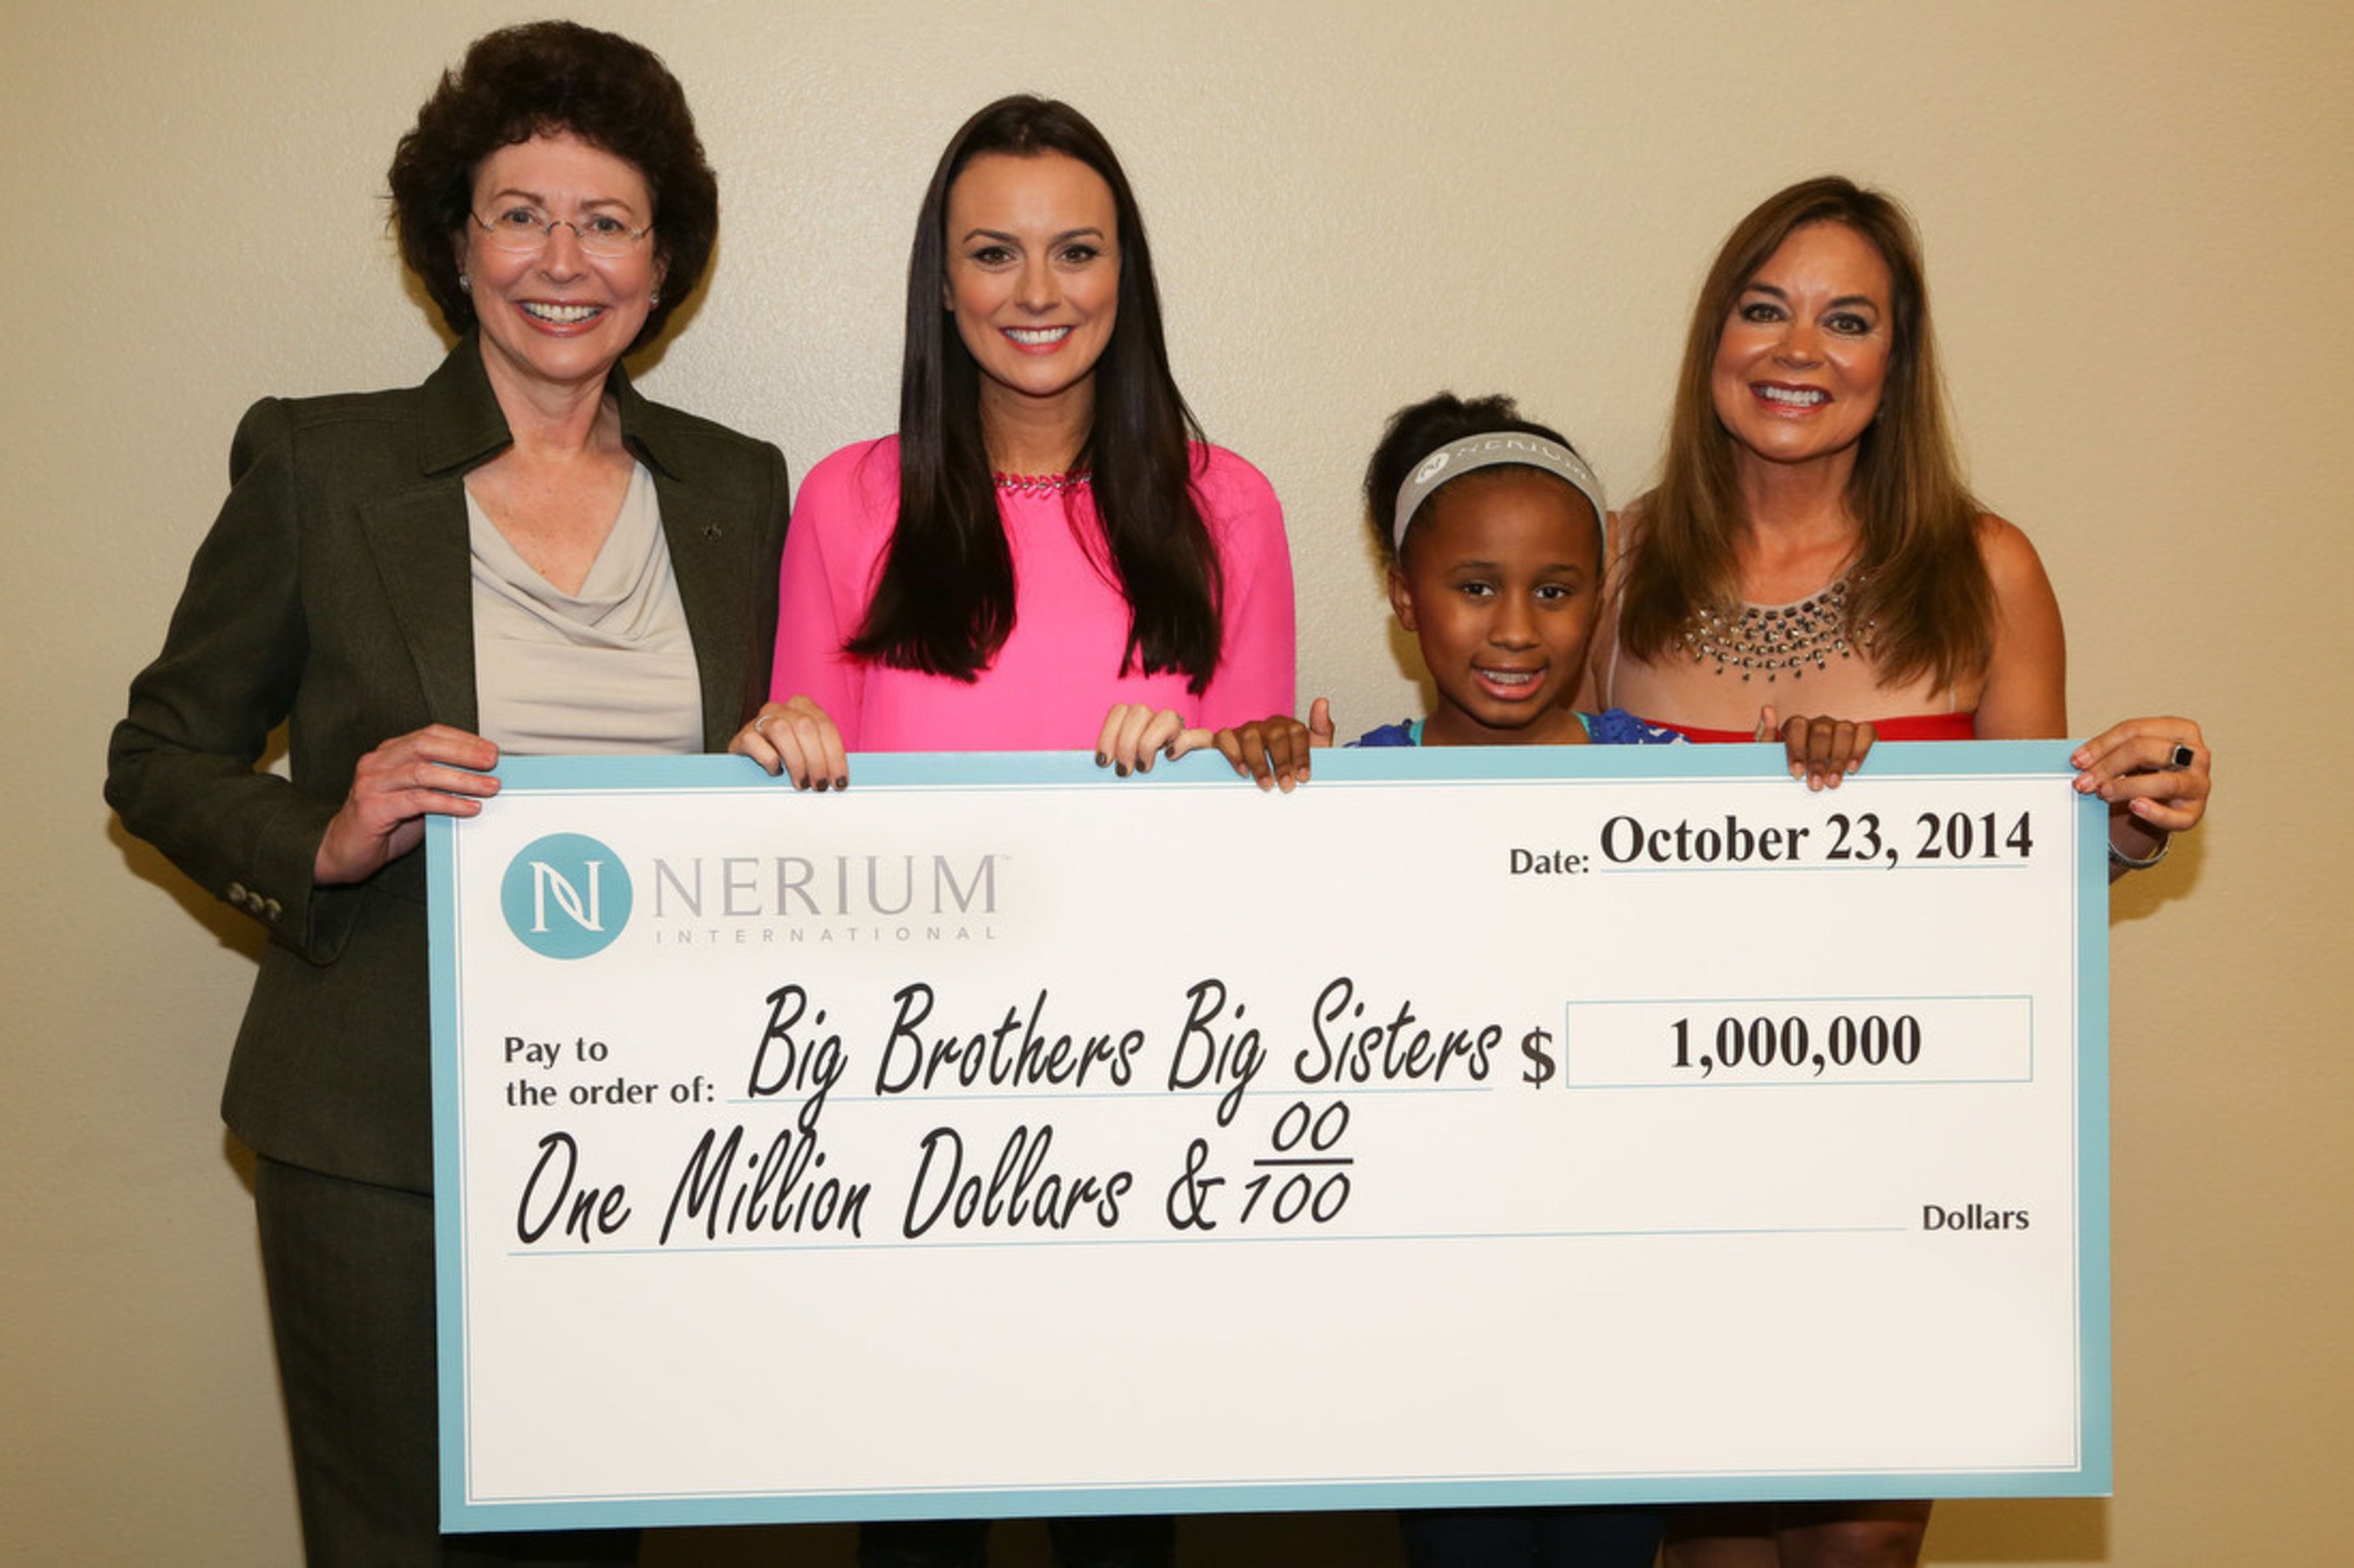 Amber Olson Rourke and Renee Olson, of Nerium International, present Pam Iorio, President and CEO of Big Brothers Big Sisters of America, with a check for $1,000,000.